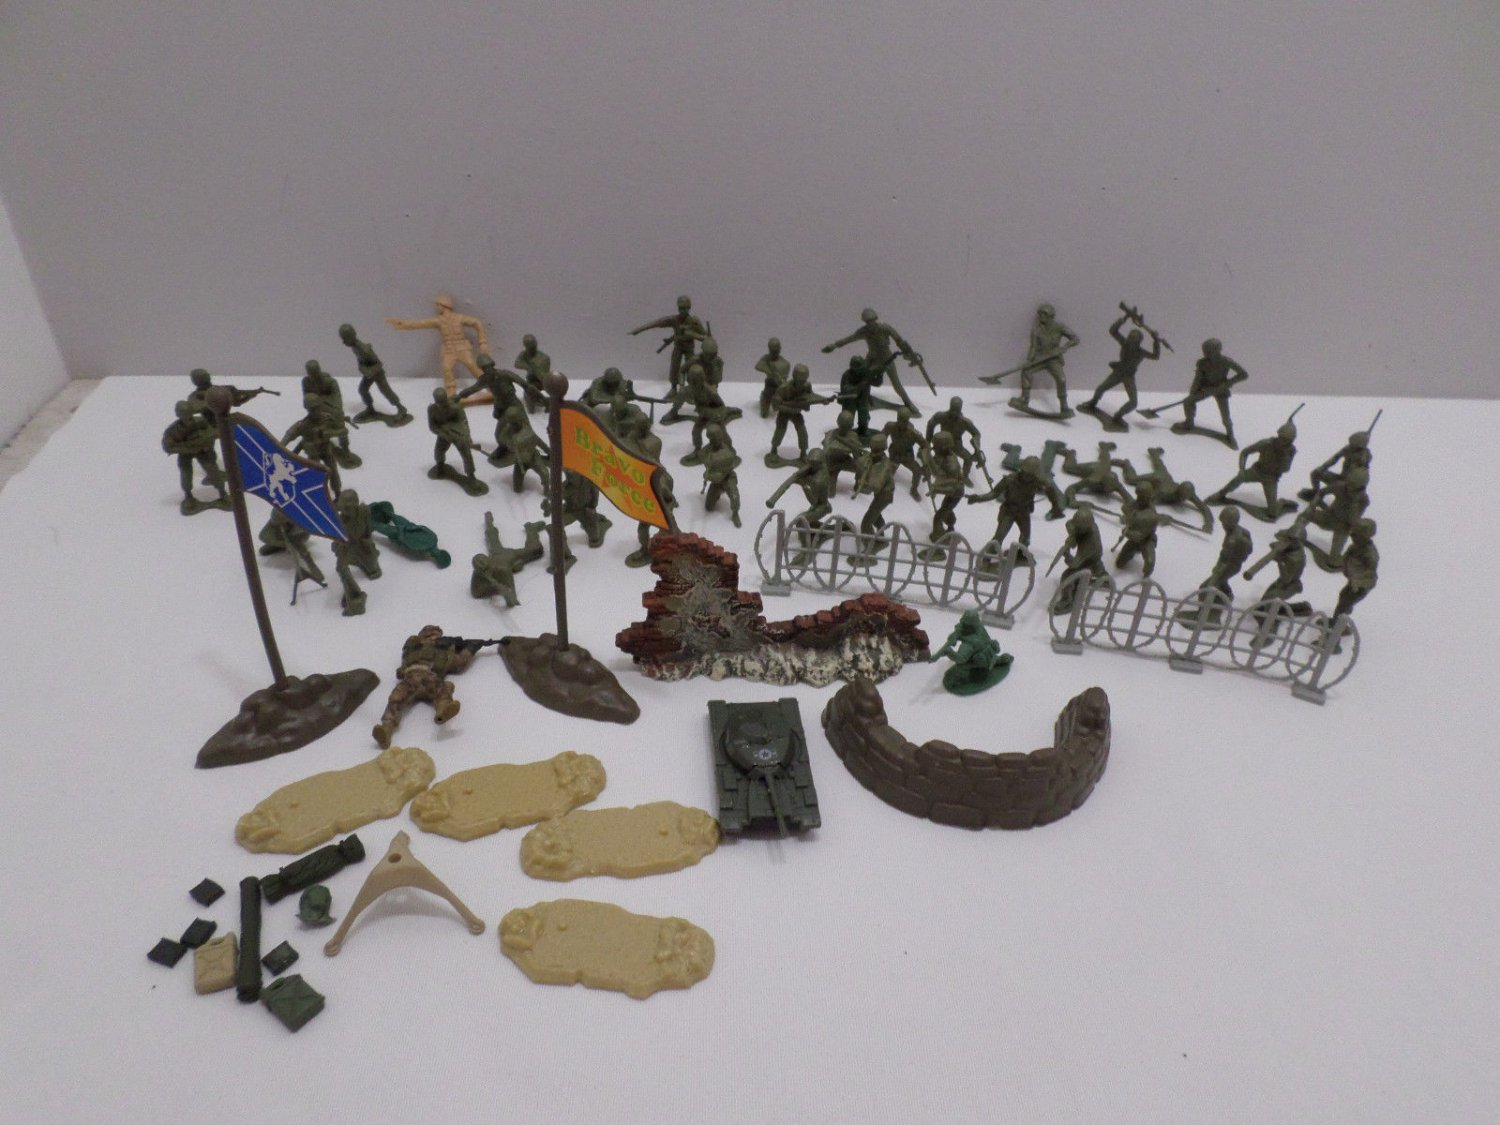 Green Plastic Army Men Action figures Toy Soldiers and other items 79 pcs